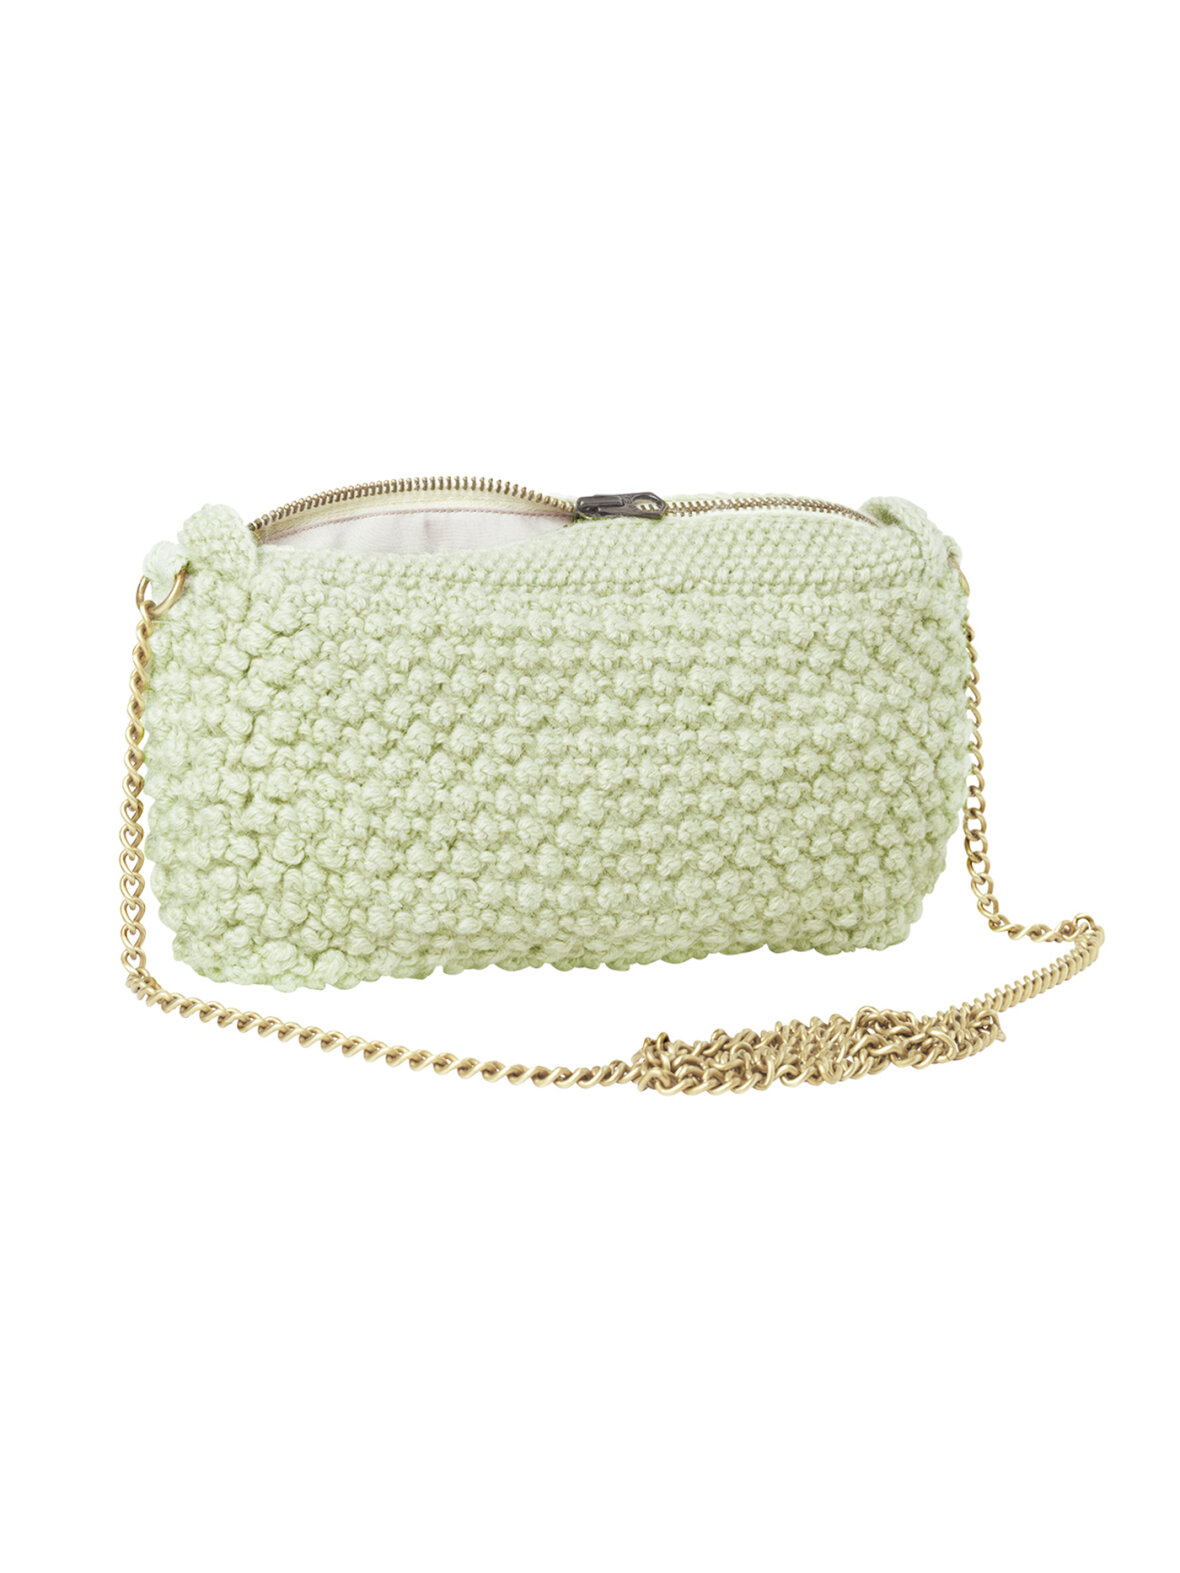 5de4e171ef8 Enula9 - Accessories,sko & smykker - AIAYU - Helen chain bag - Lemon ...